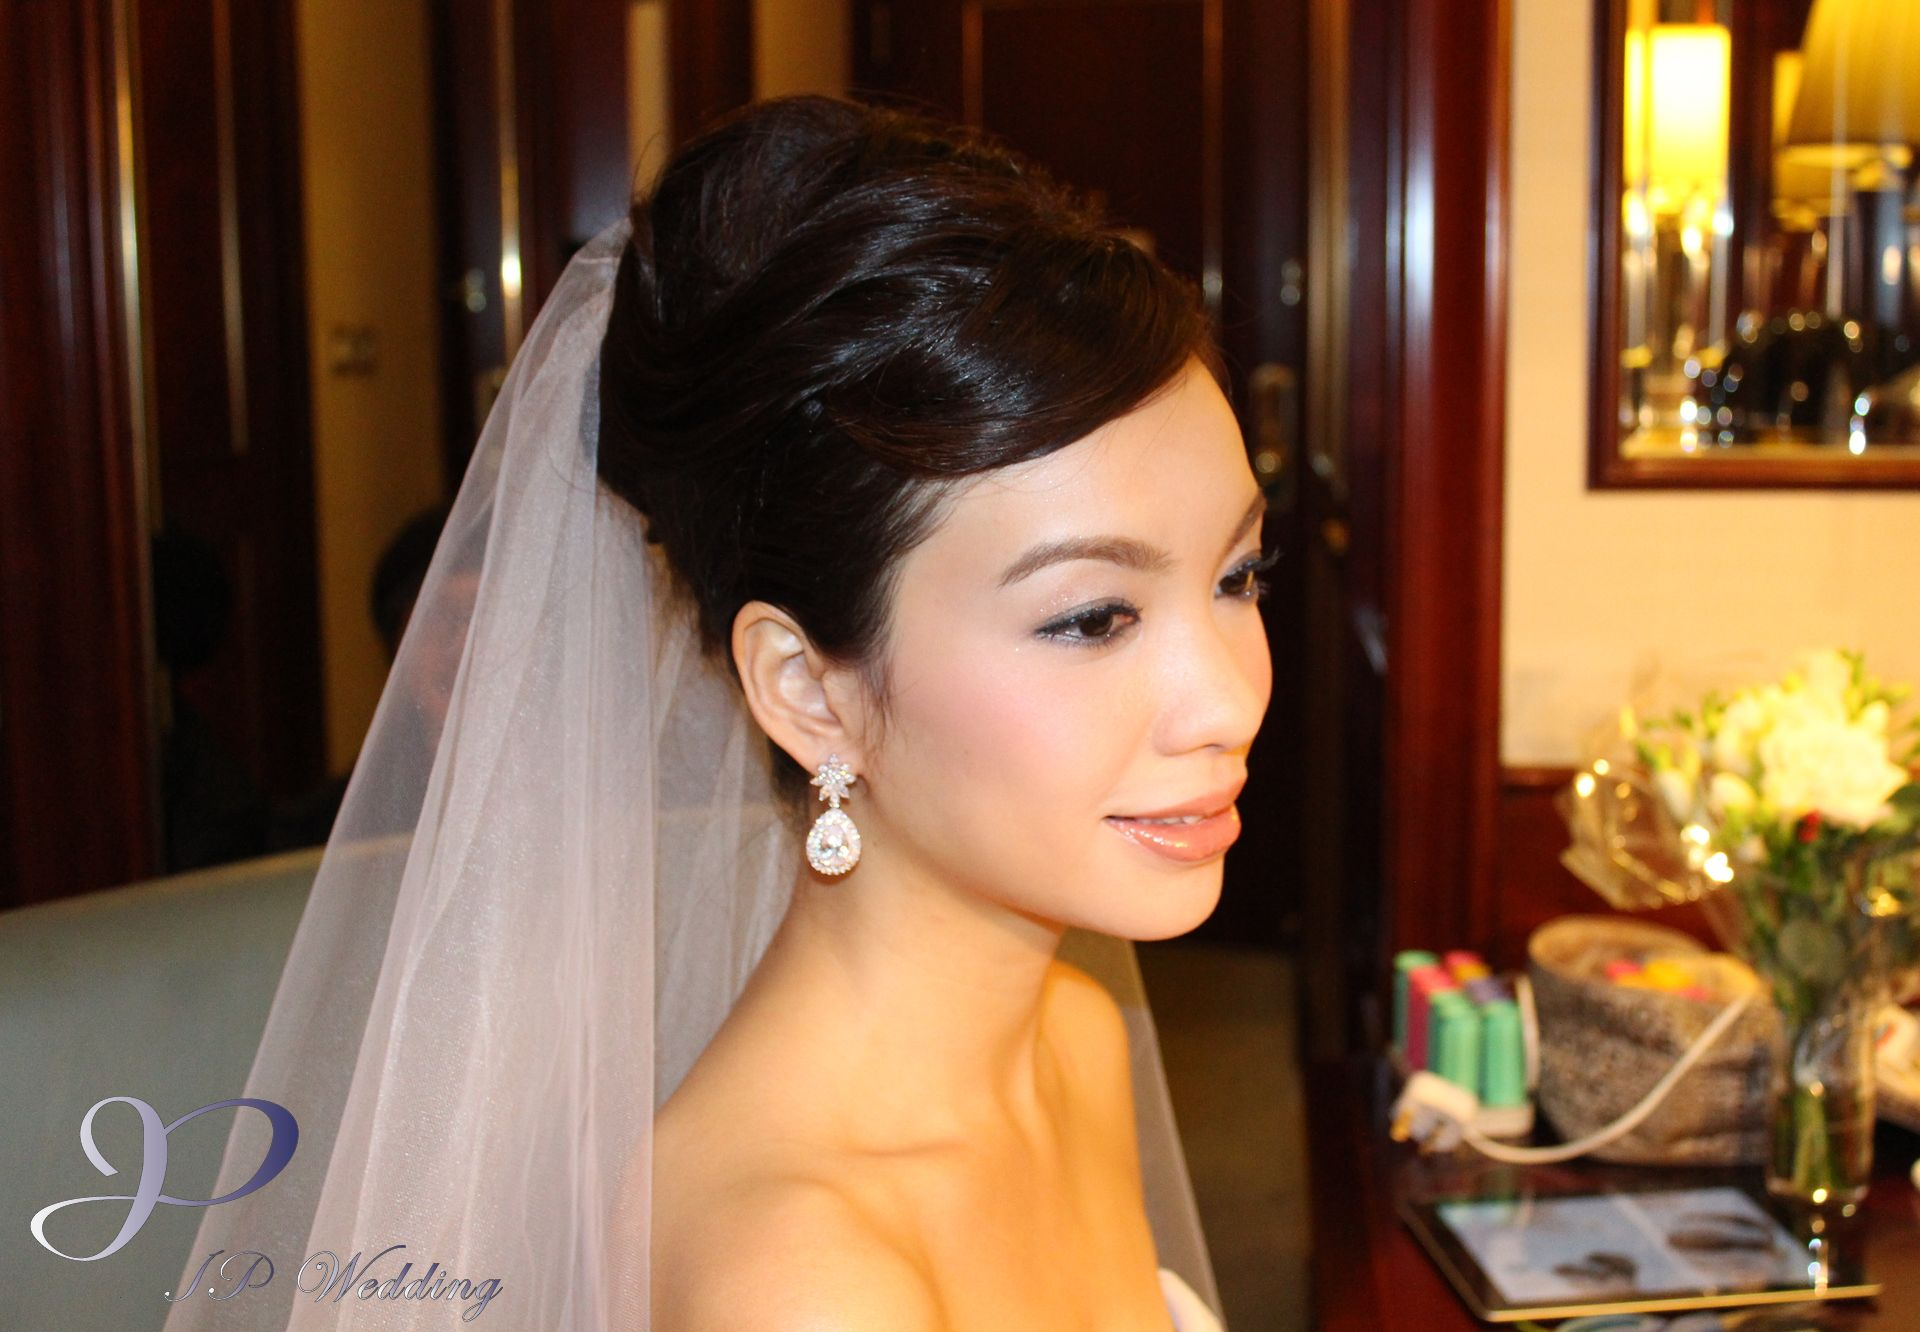 JP Wedding, hotel bridal makeup